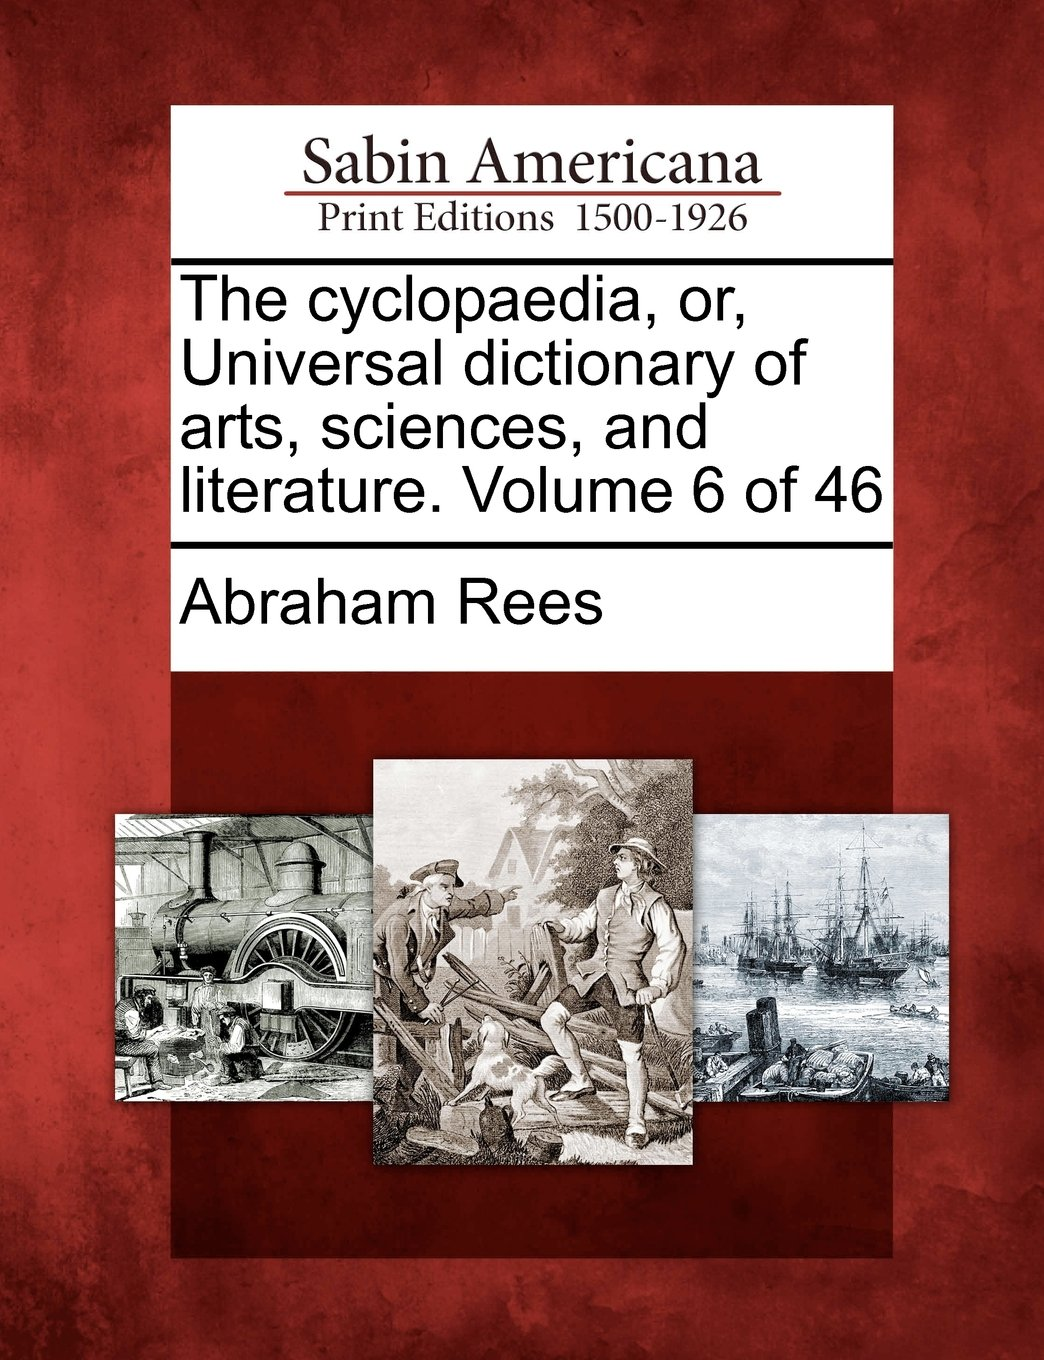 Read Online The cyclopaedia, or, Universal dictionary of arts, sciences, and literature. Volume 6 of 46 PDF